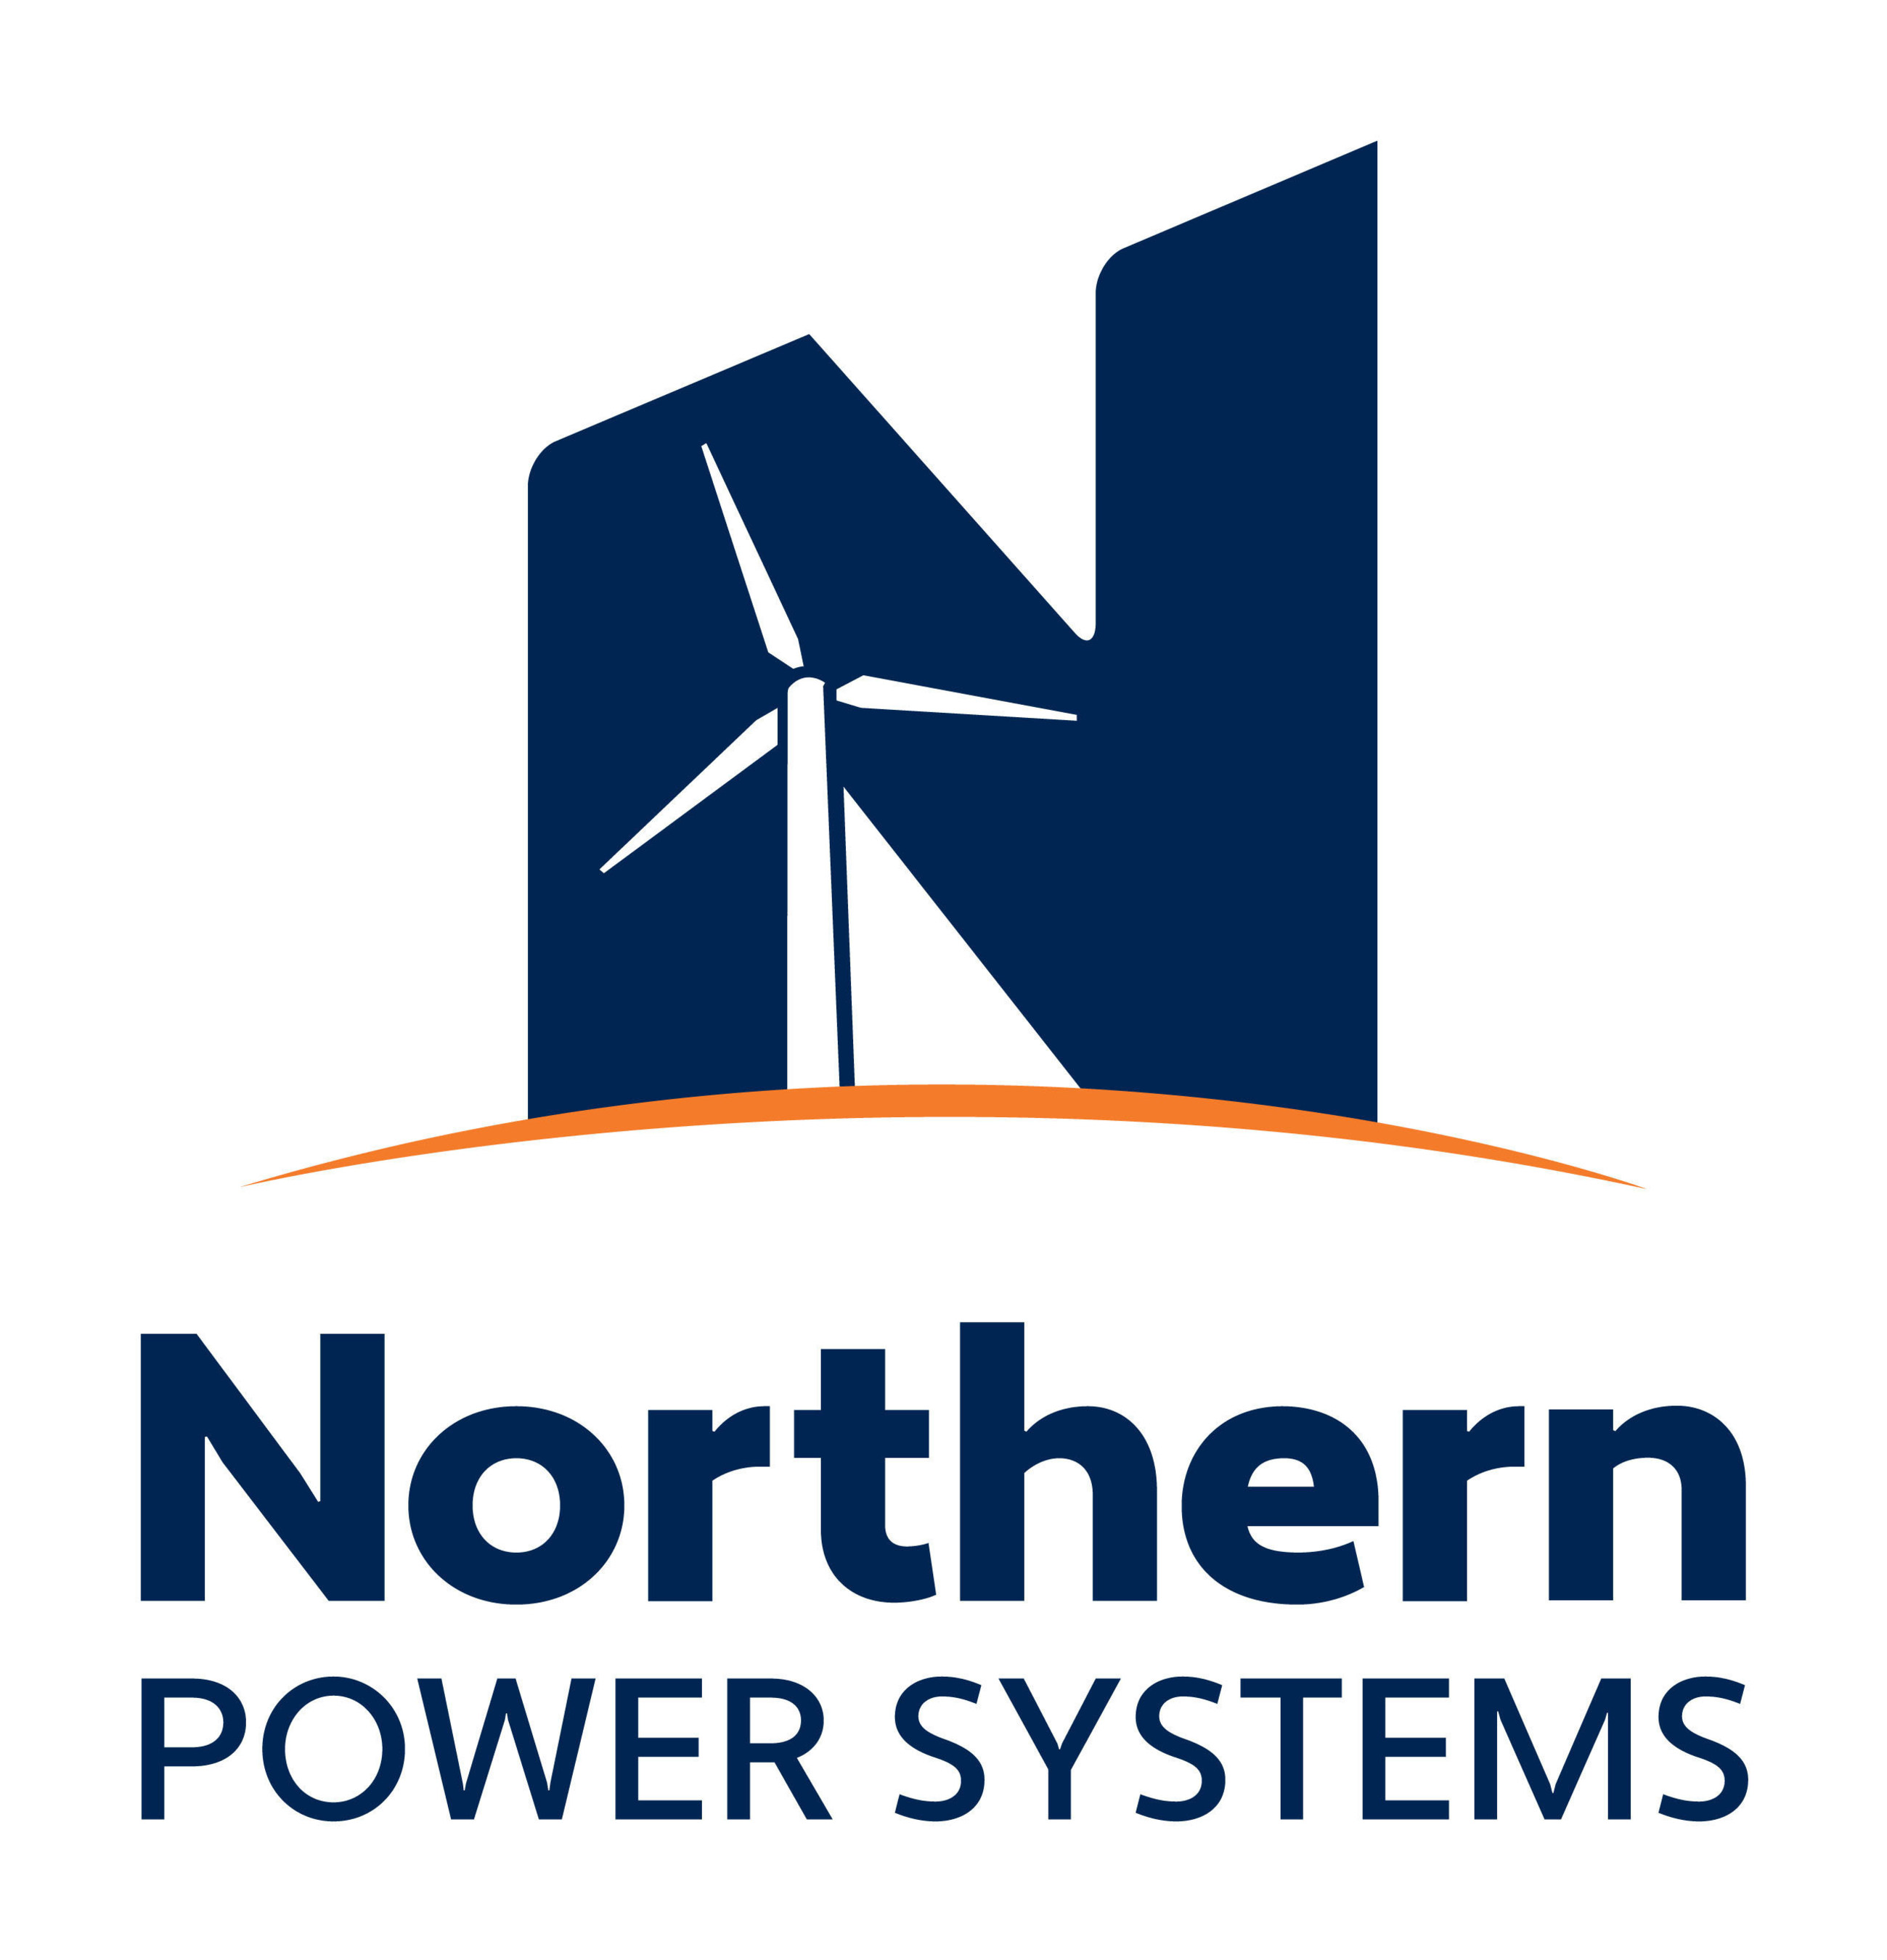 Northern Power Systems announces fully integrated energy storage system using any battery/mechanical storage option